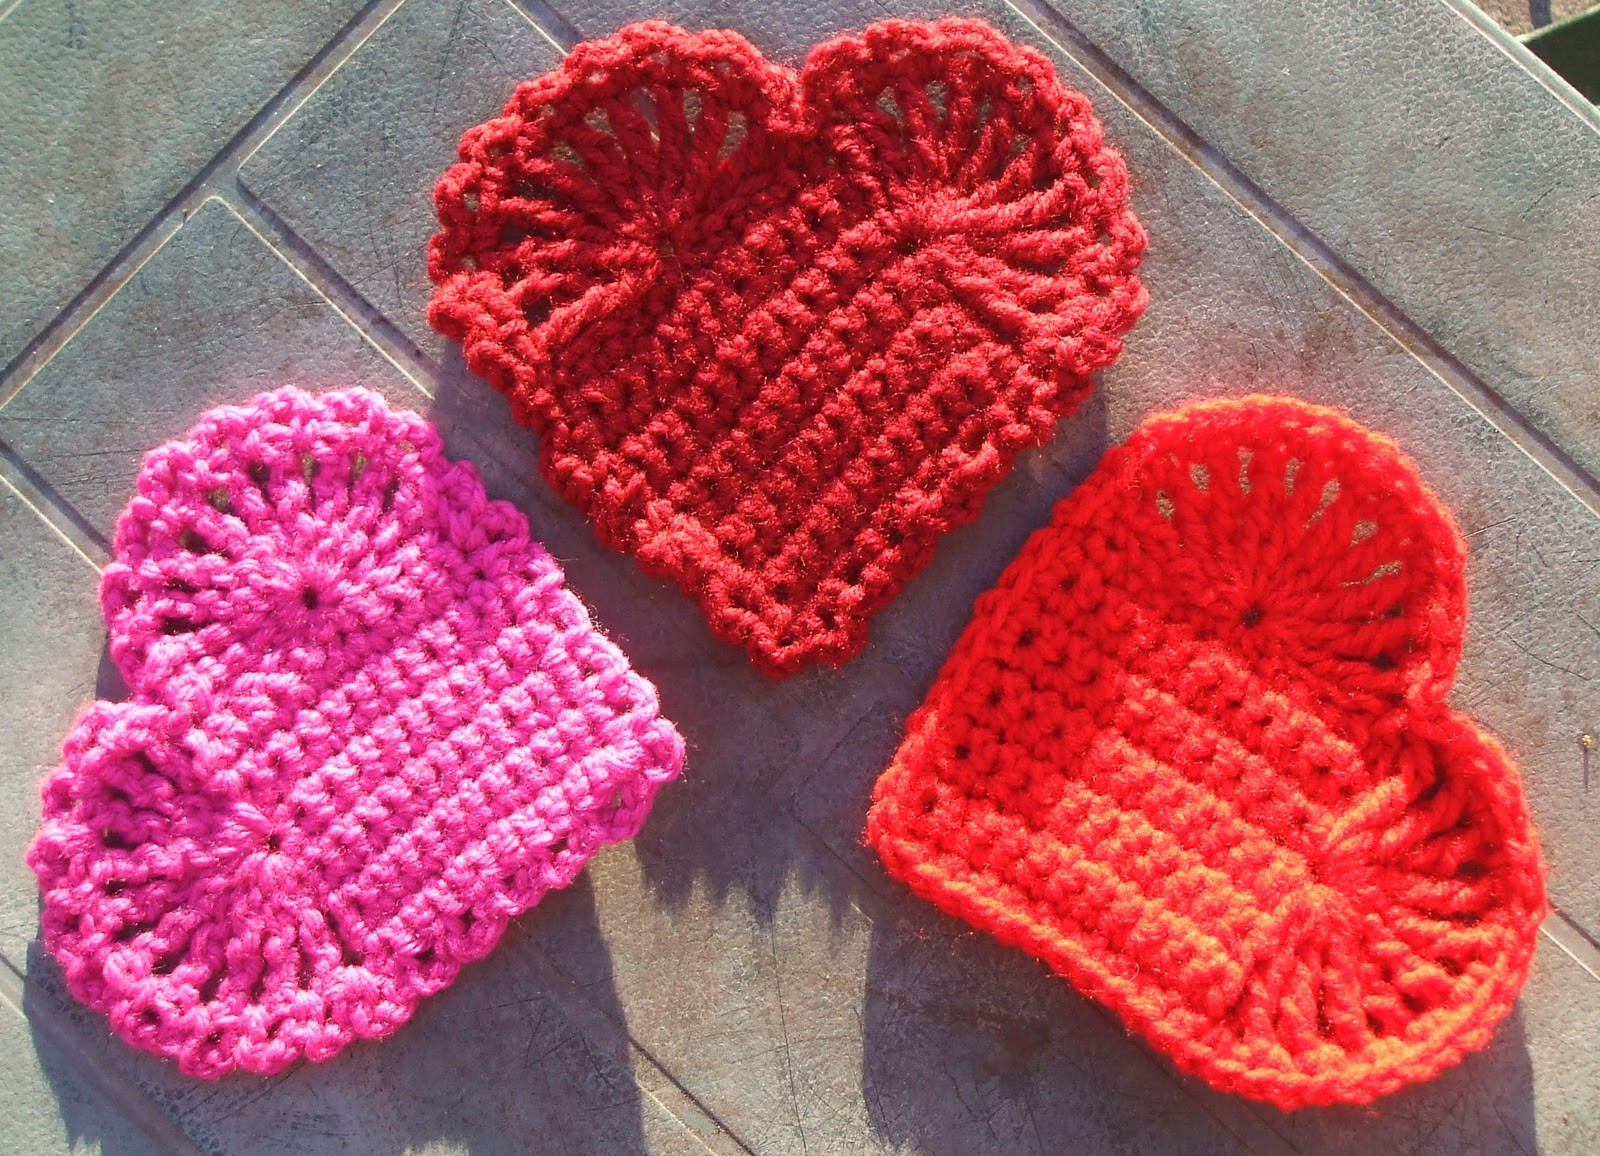 Red Heart Free Crochet Patterns Fresh Red Heart Free Crochet Patterns Of Adorable 43 Images Red Heart Free Crochet Patterns